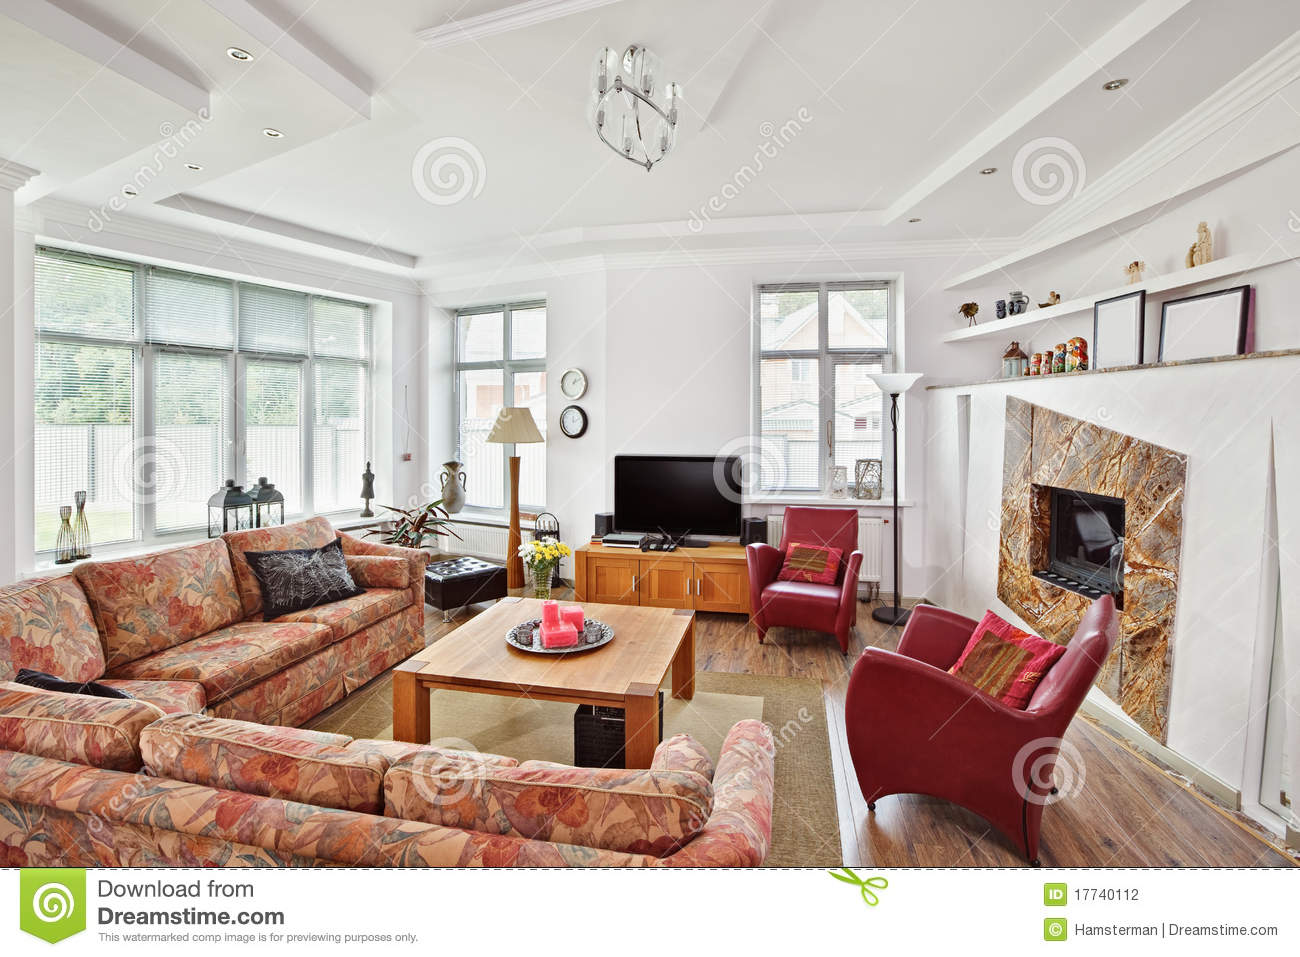 Modern art deco style drawing room interior stock photo for Modern drawing room interior